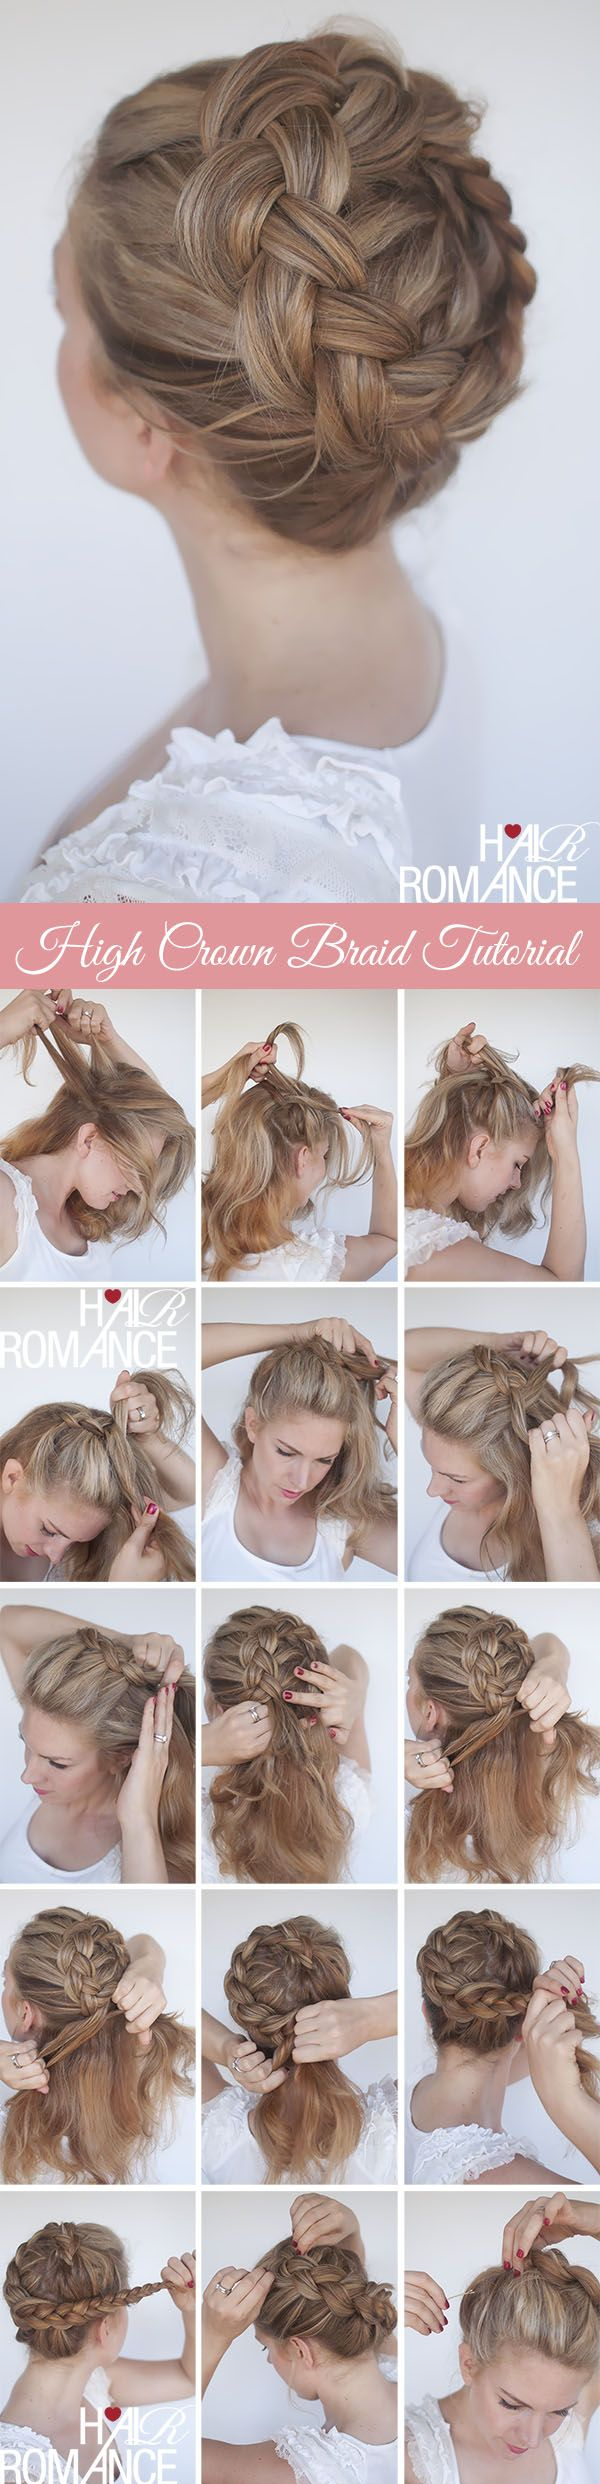 Hair Romance - braided crown hairstyle tutorial